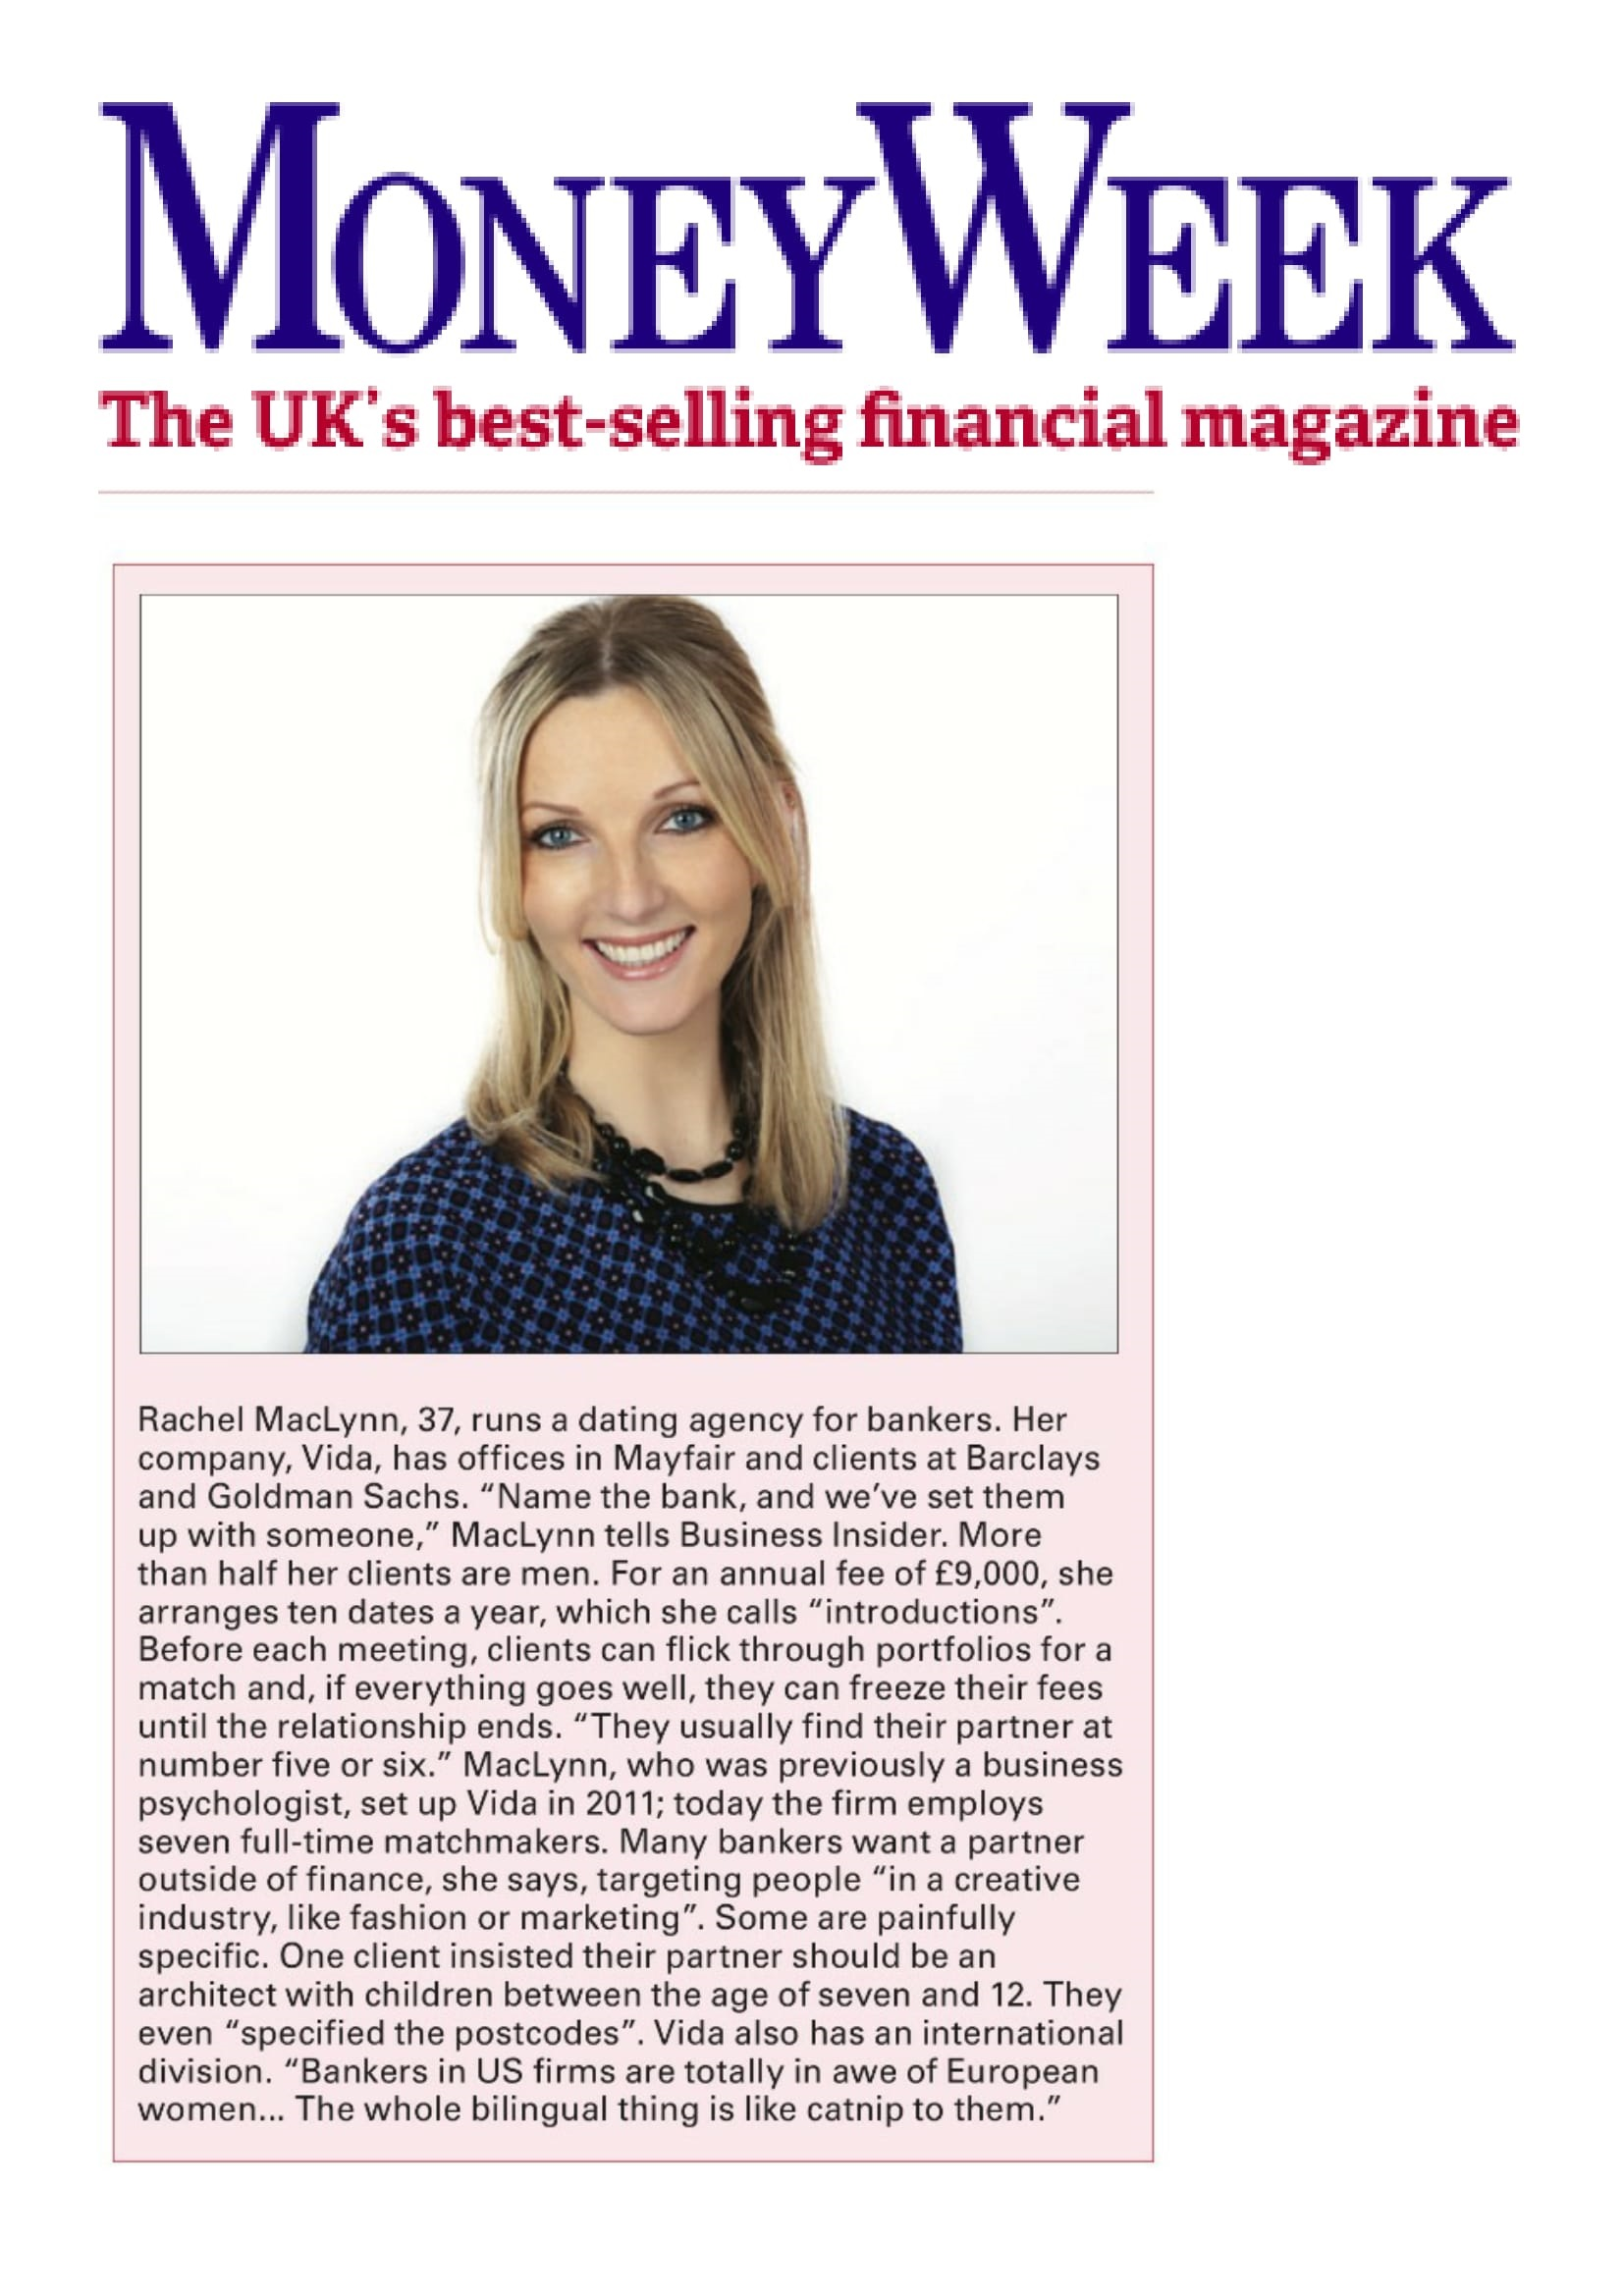 rachel maclynn in MoneyWeek